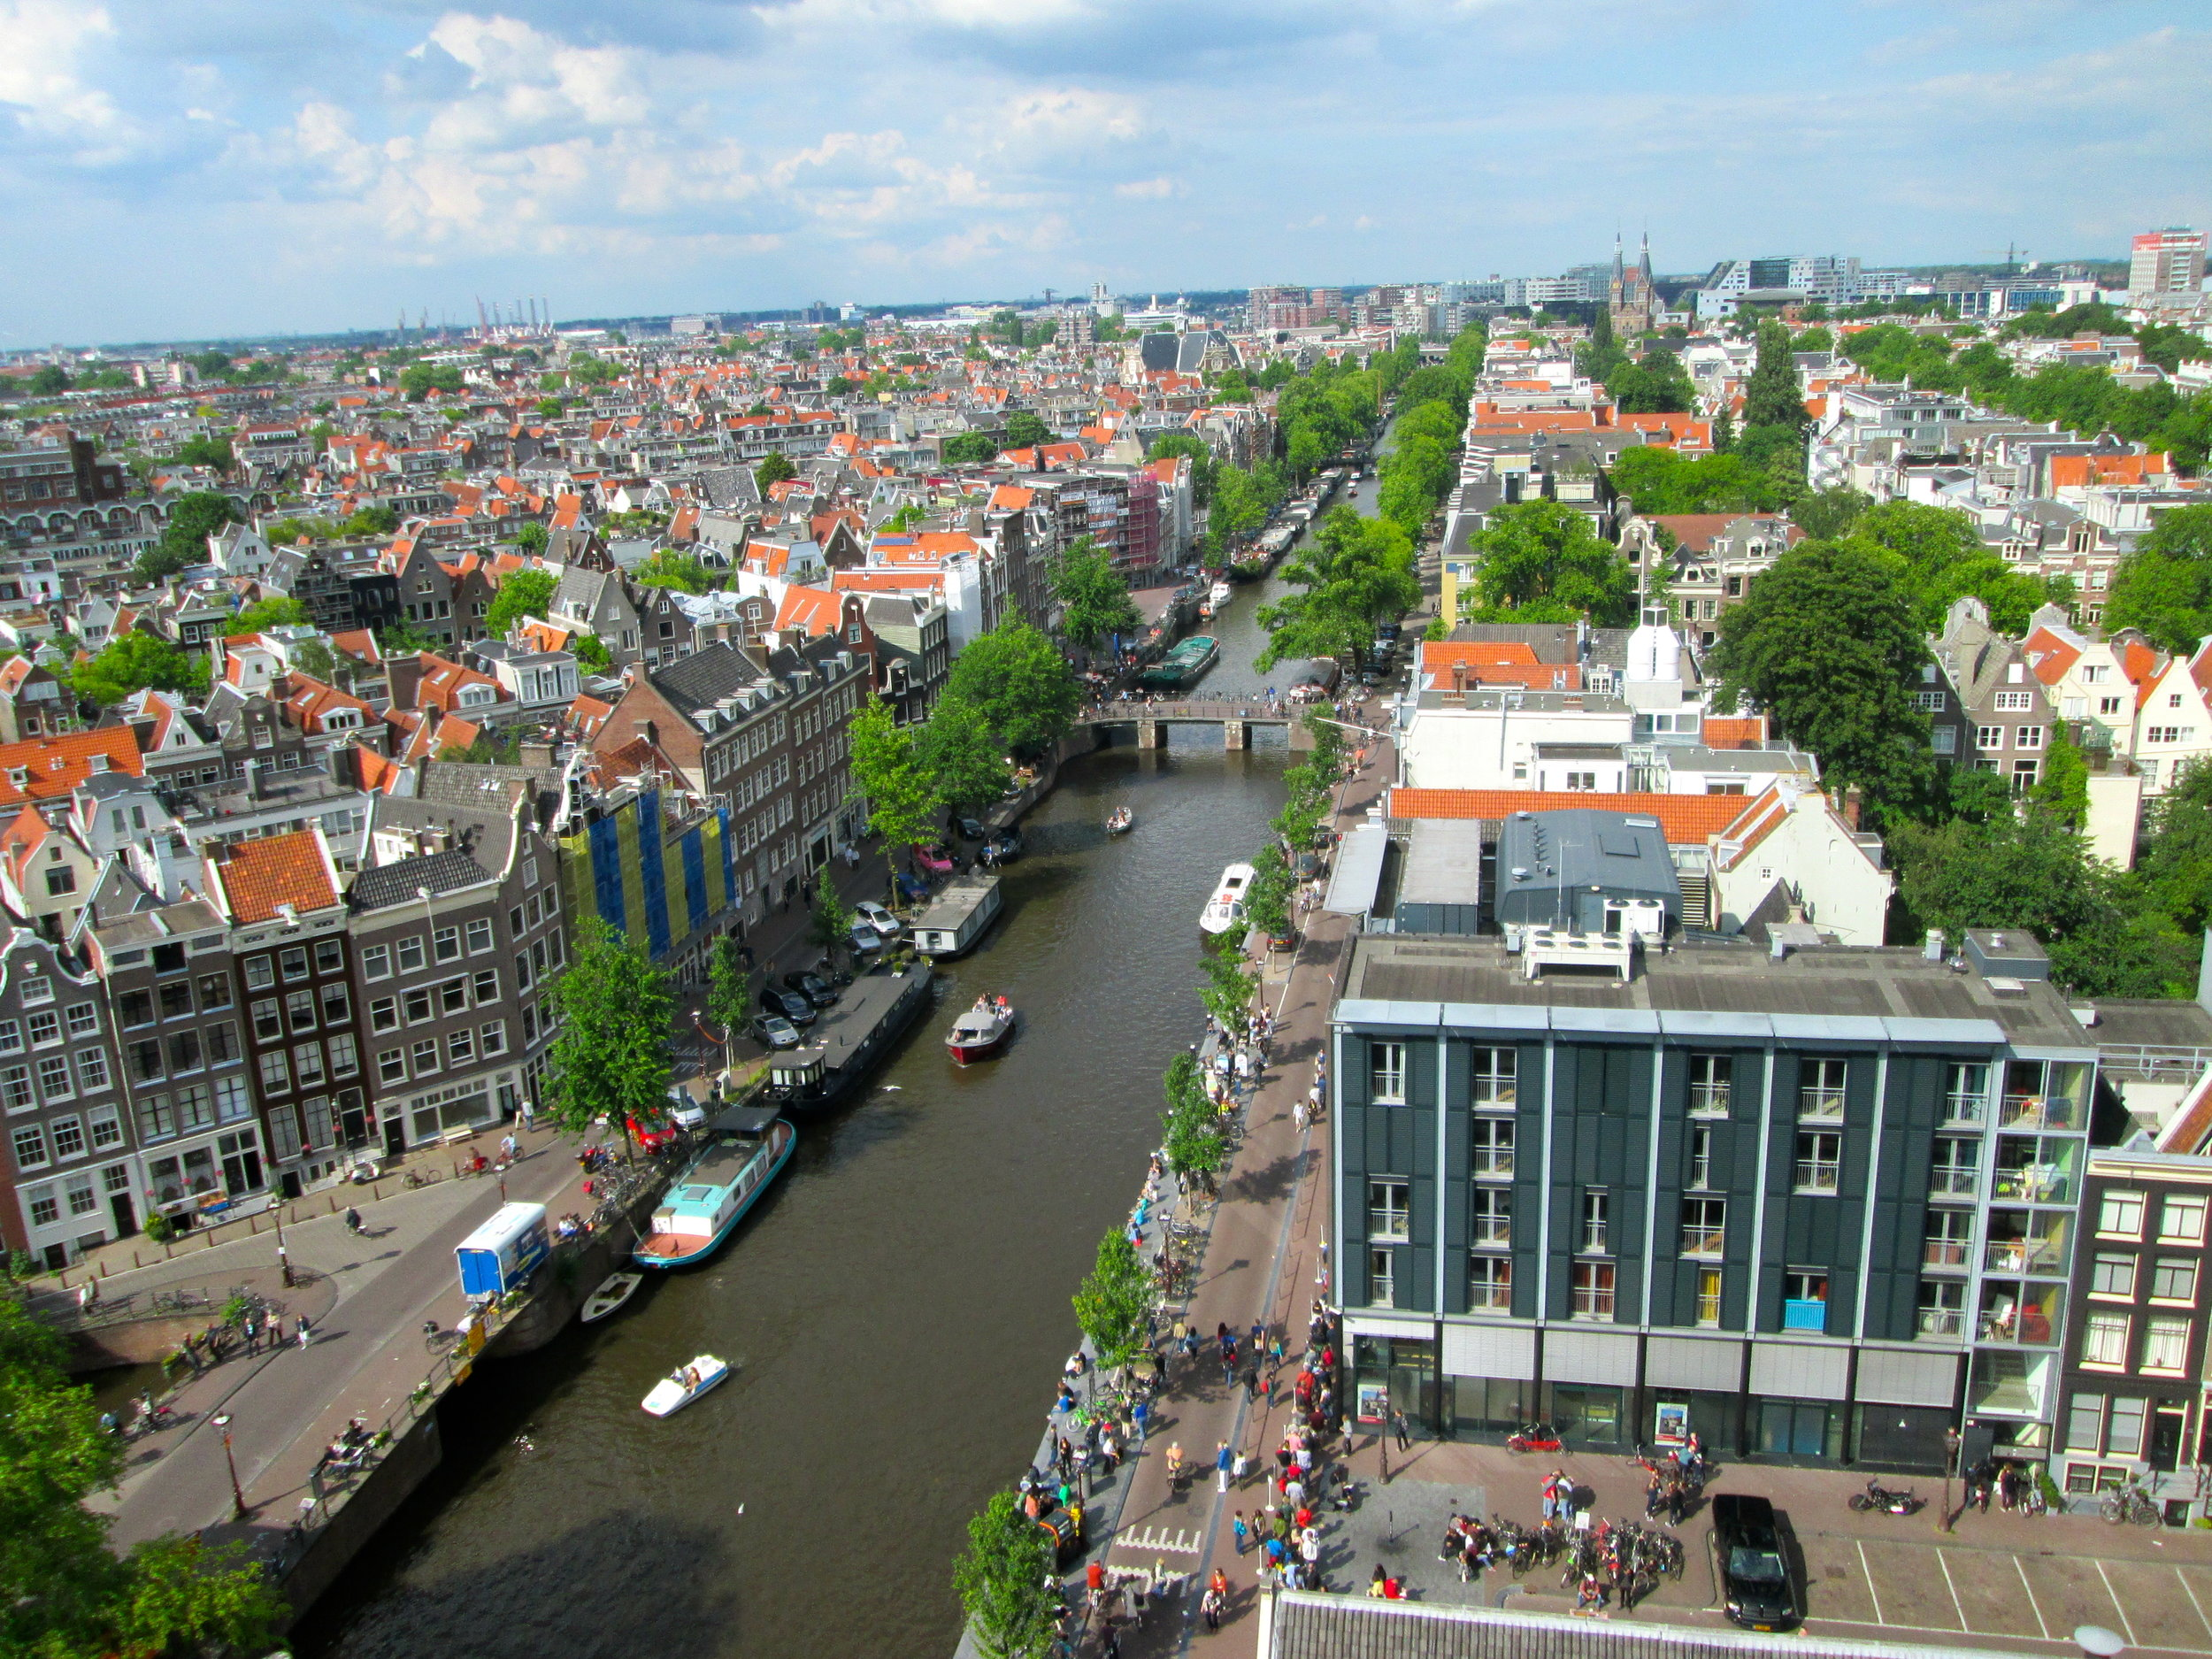 View of the Prinsengracht from de Westertoren (tower of the Westerkerk).